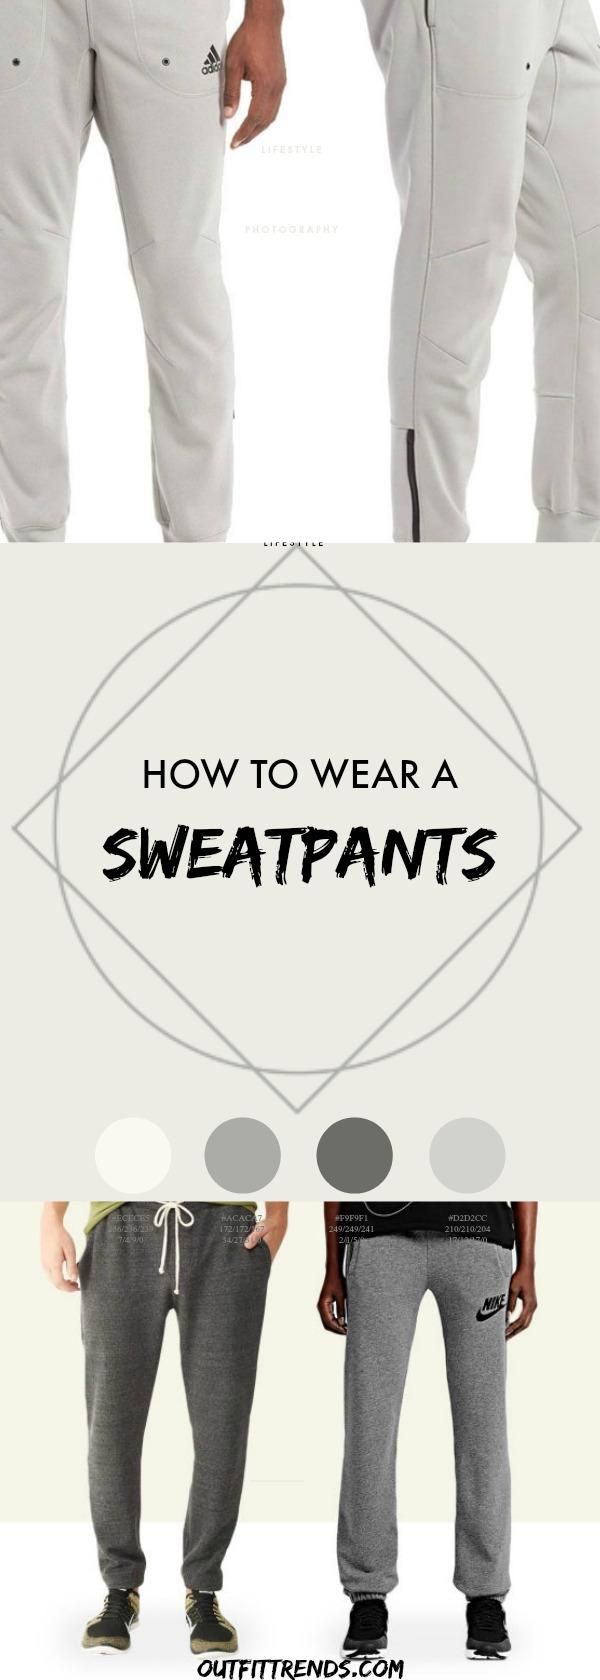 how to wear sweatpants guys